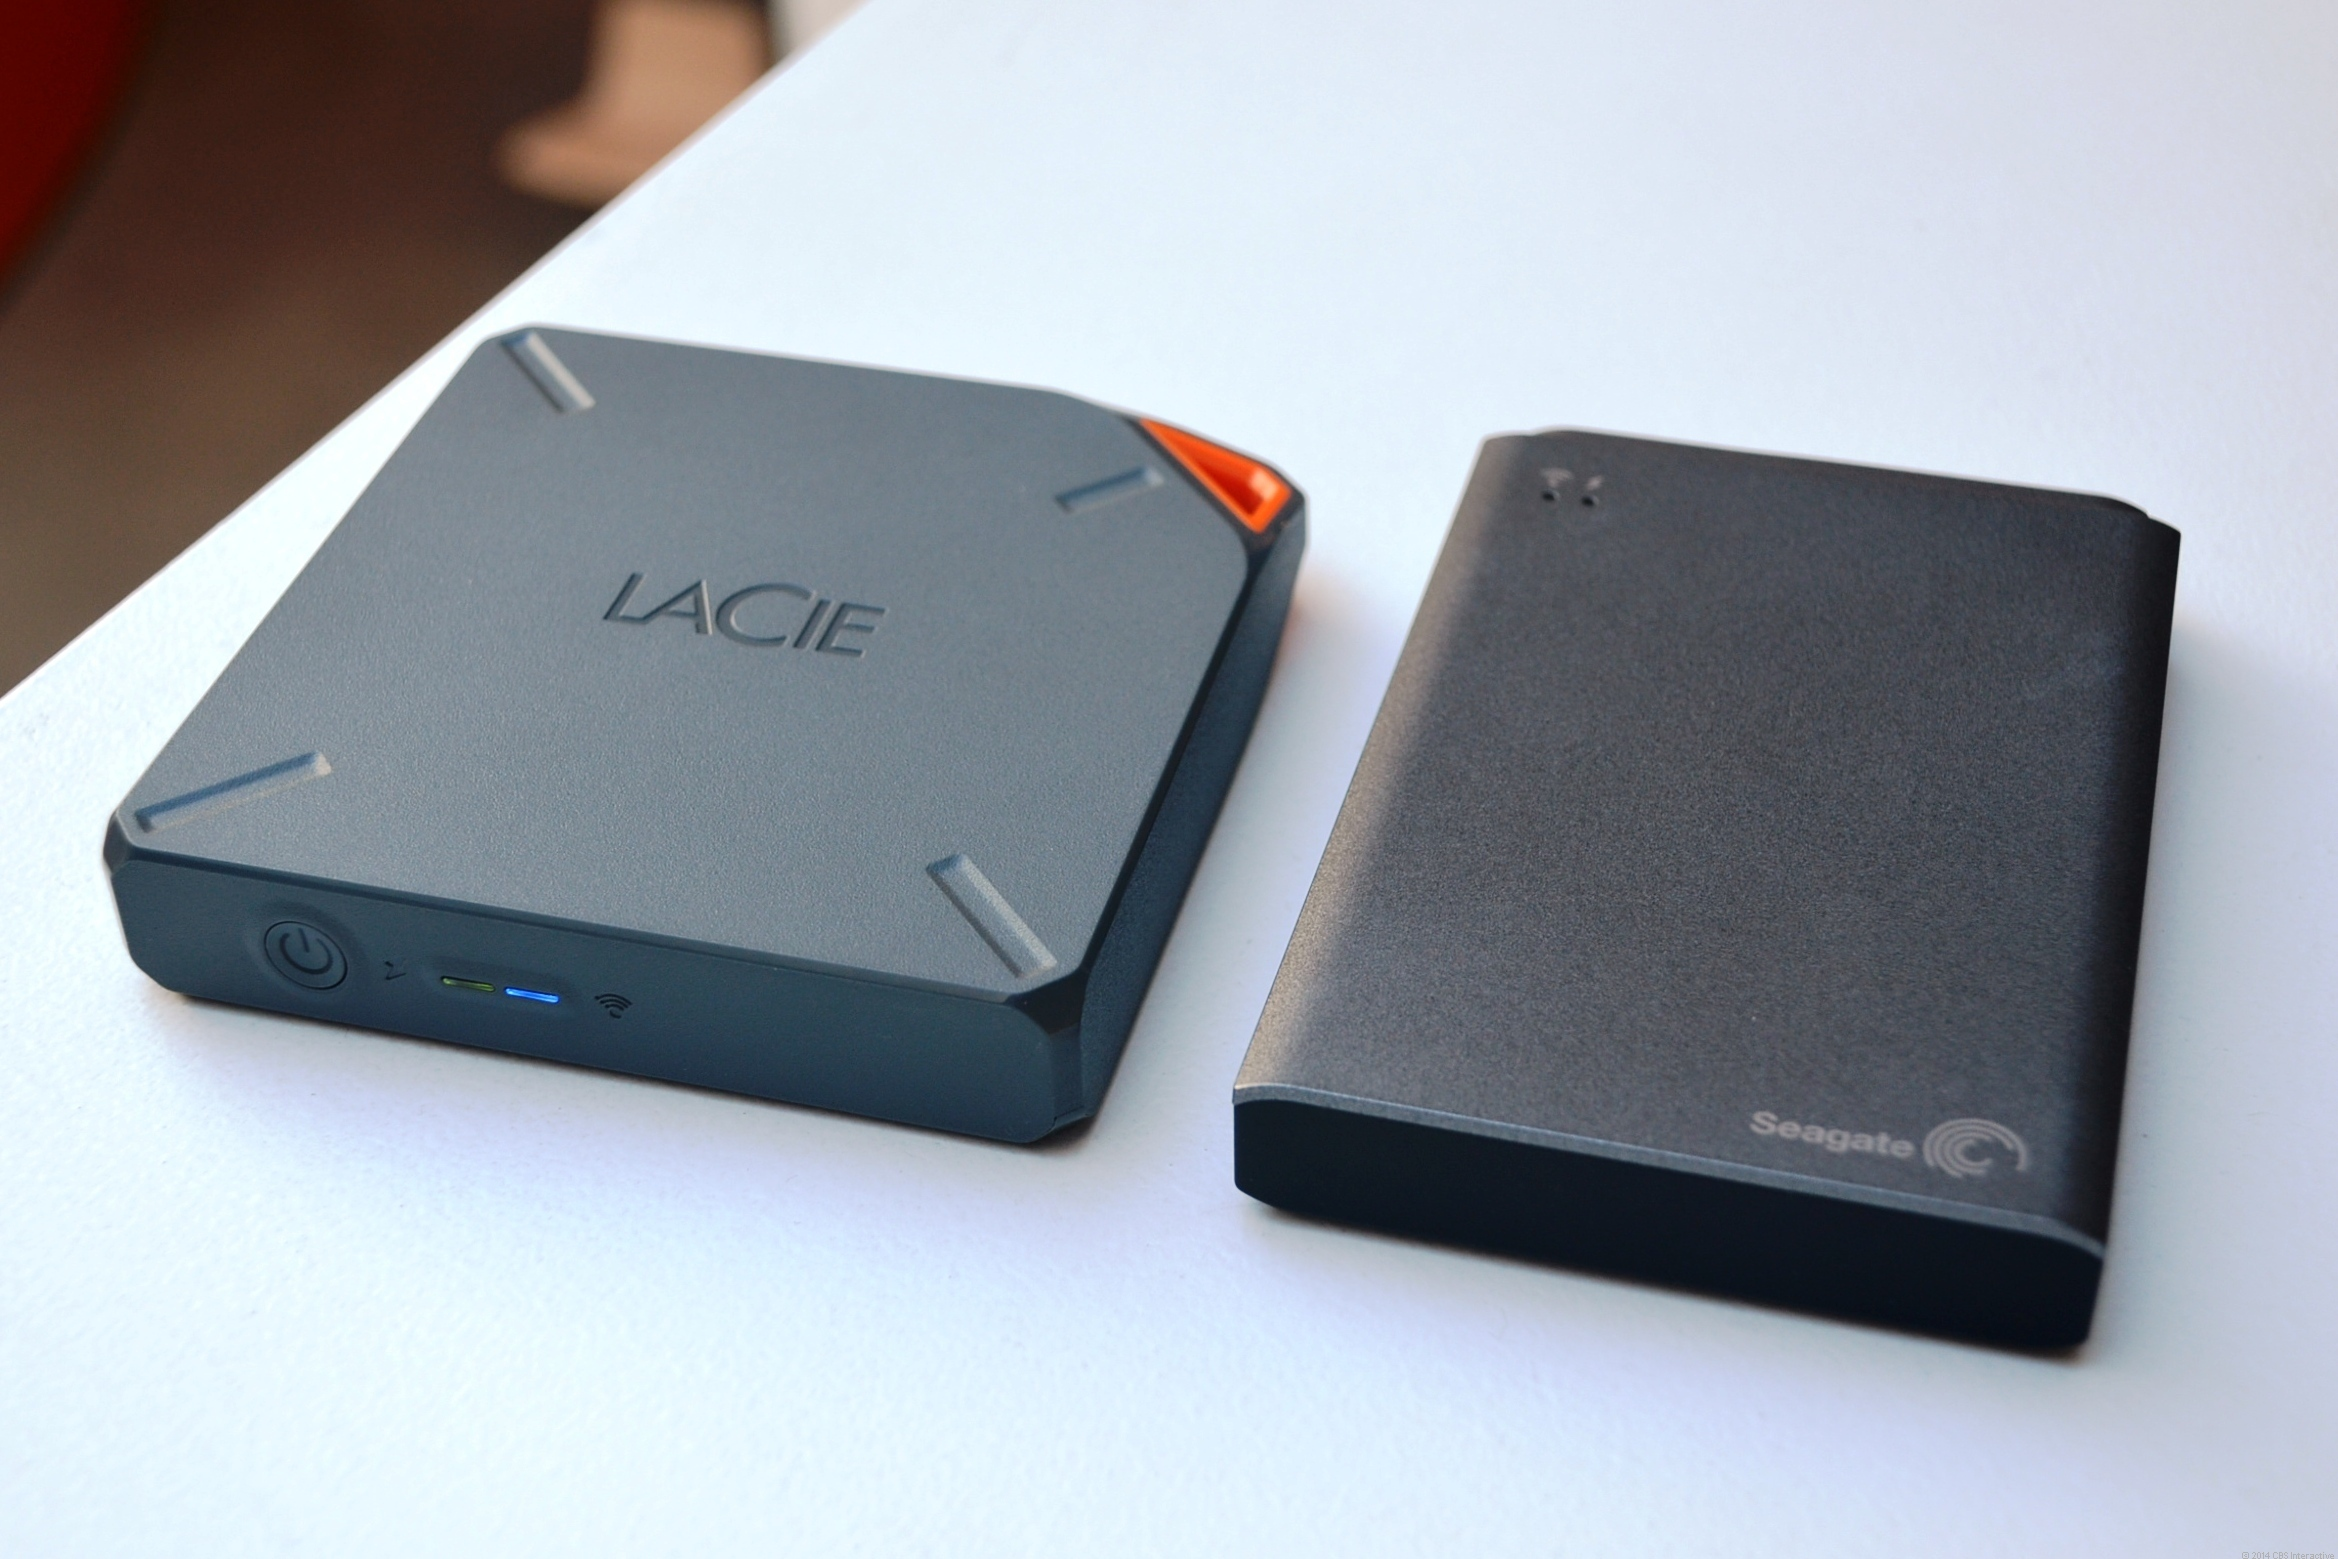 The LaCie Fuel (left) next the to Seagate Wireless Plus. The two device share the same features and mobile app.